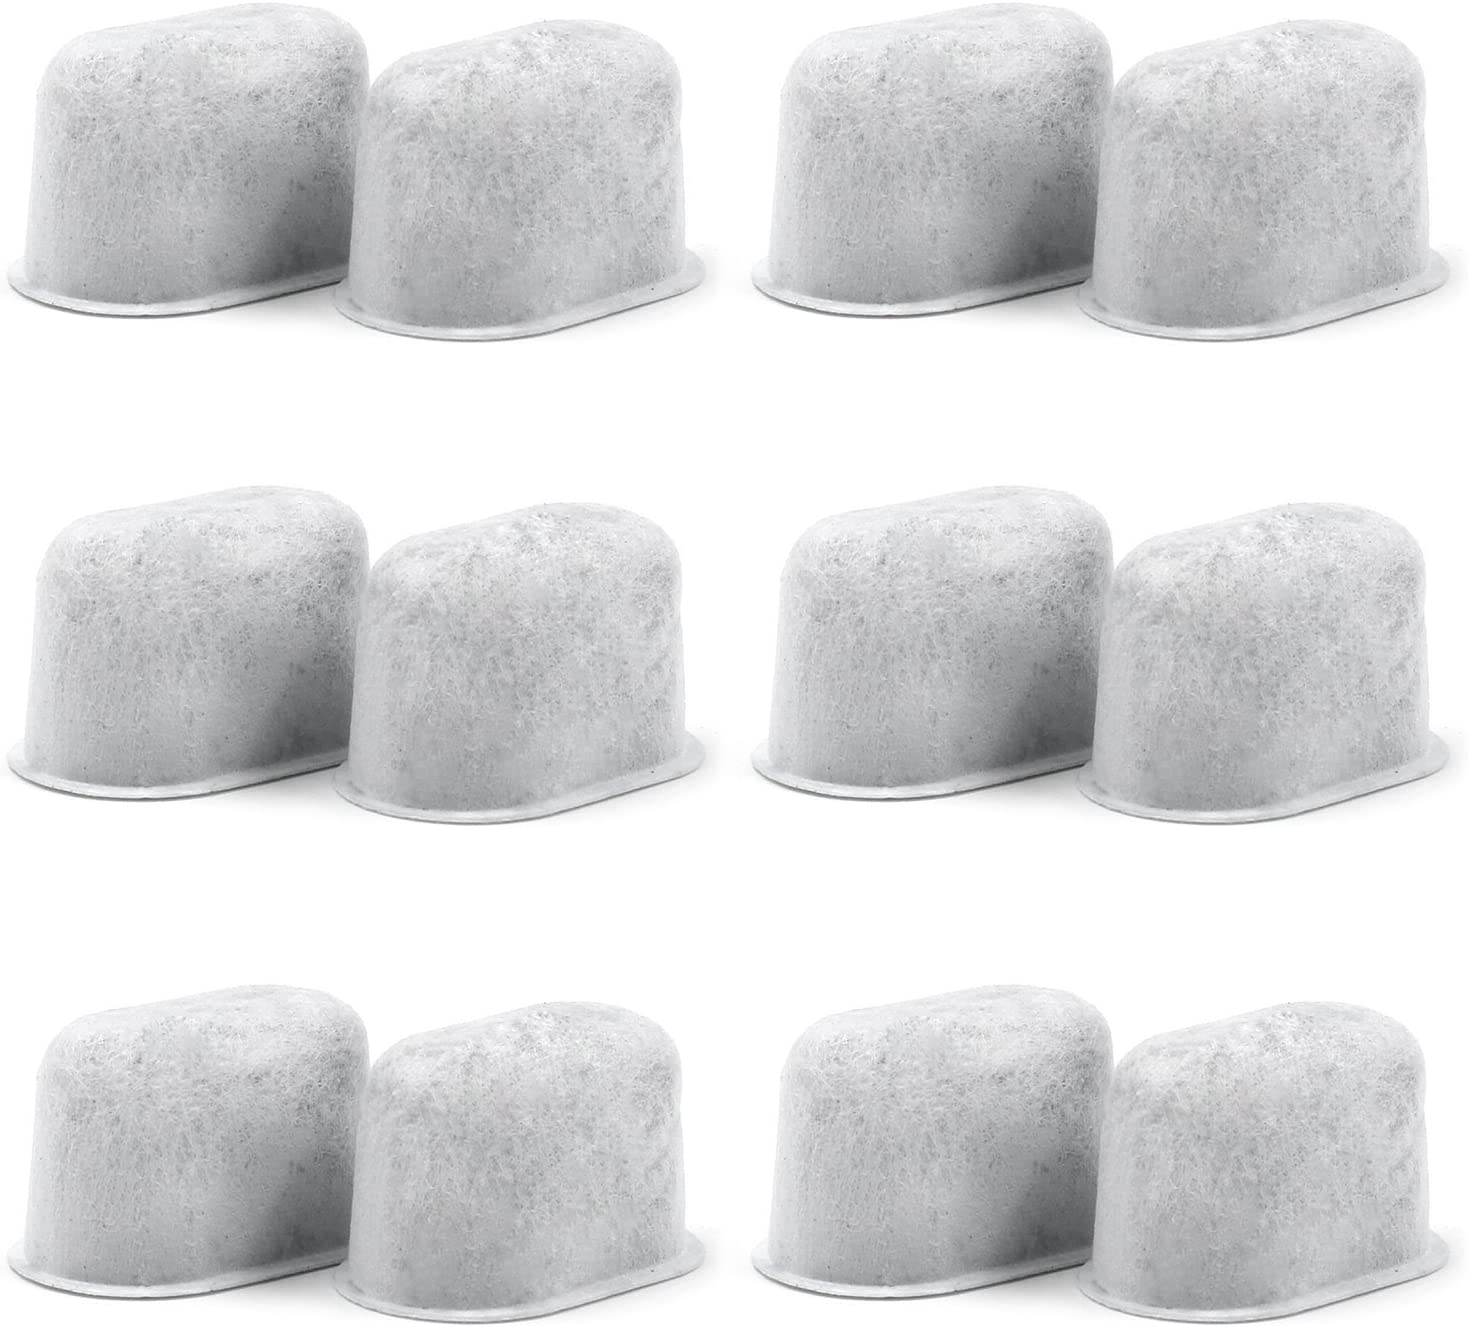 12 Pack Cuisinart Compatible Charcoal Water Filters - Removes Chlorine, odors, and others impurities from Water - for Cuisinart Coffee Machines 715mhHh1LzL